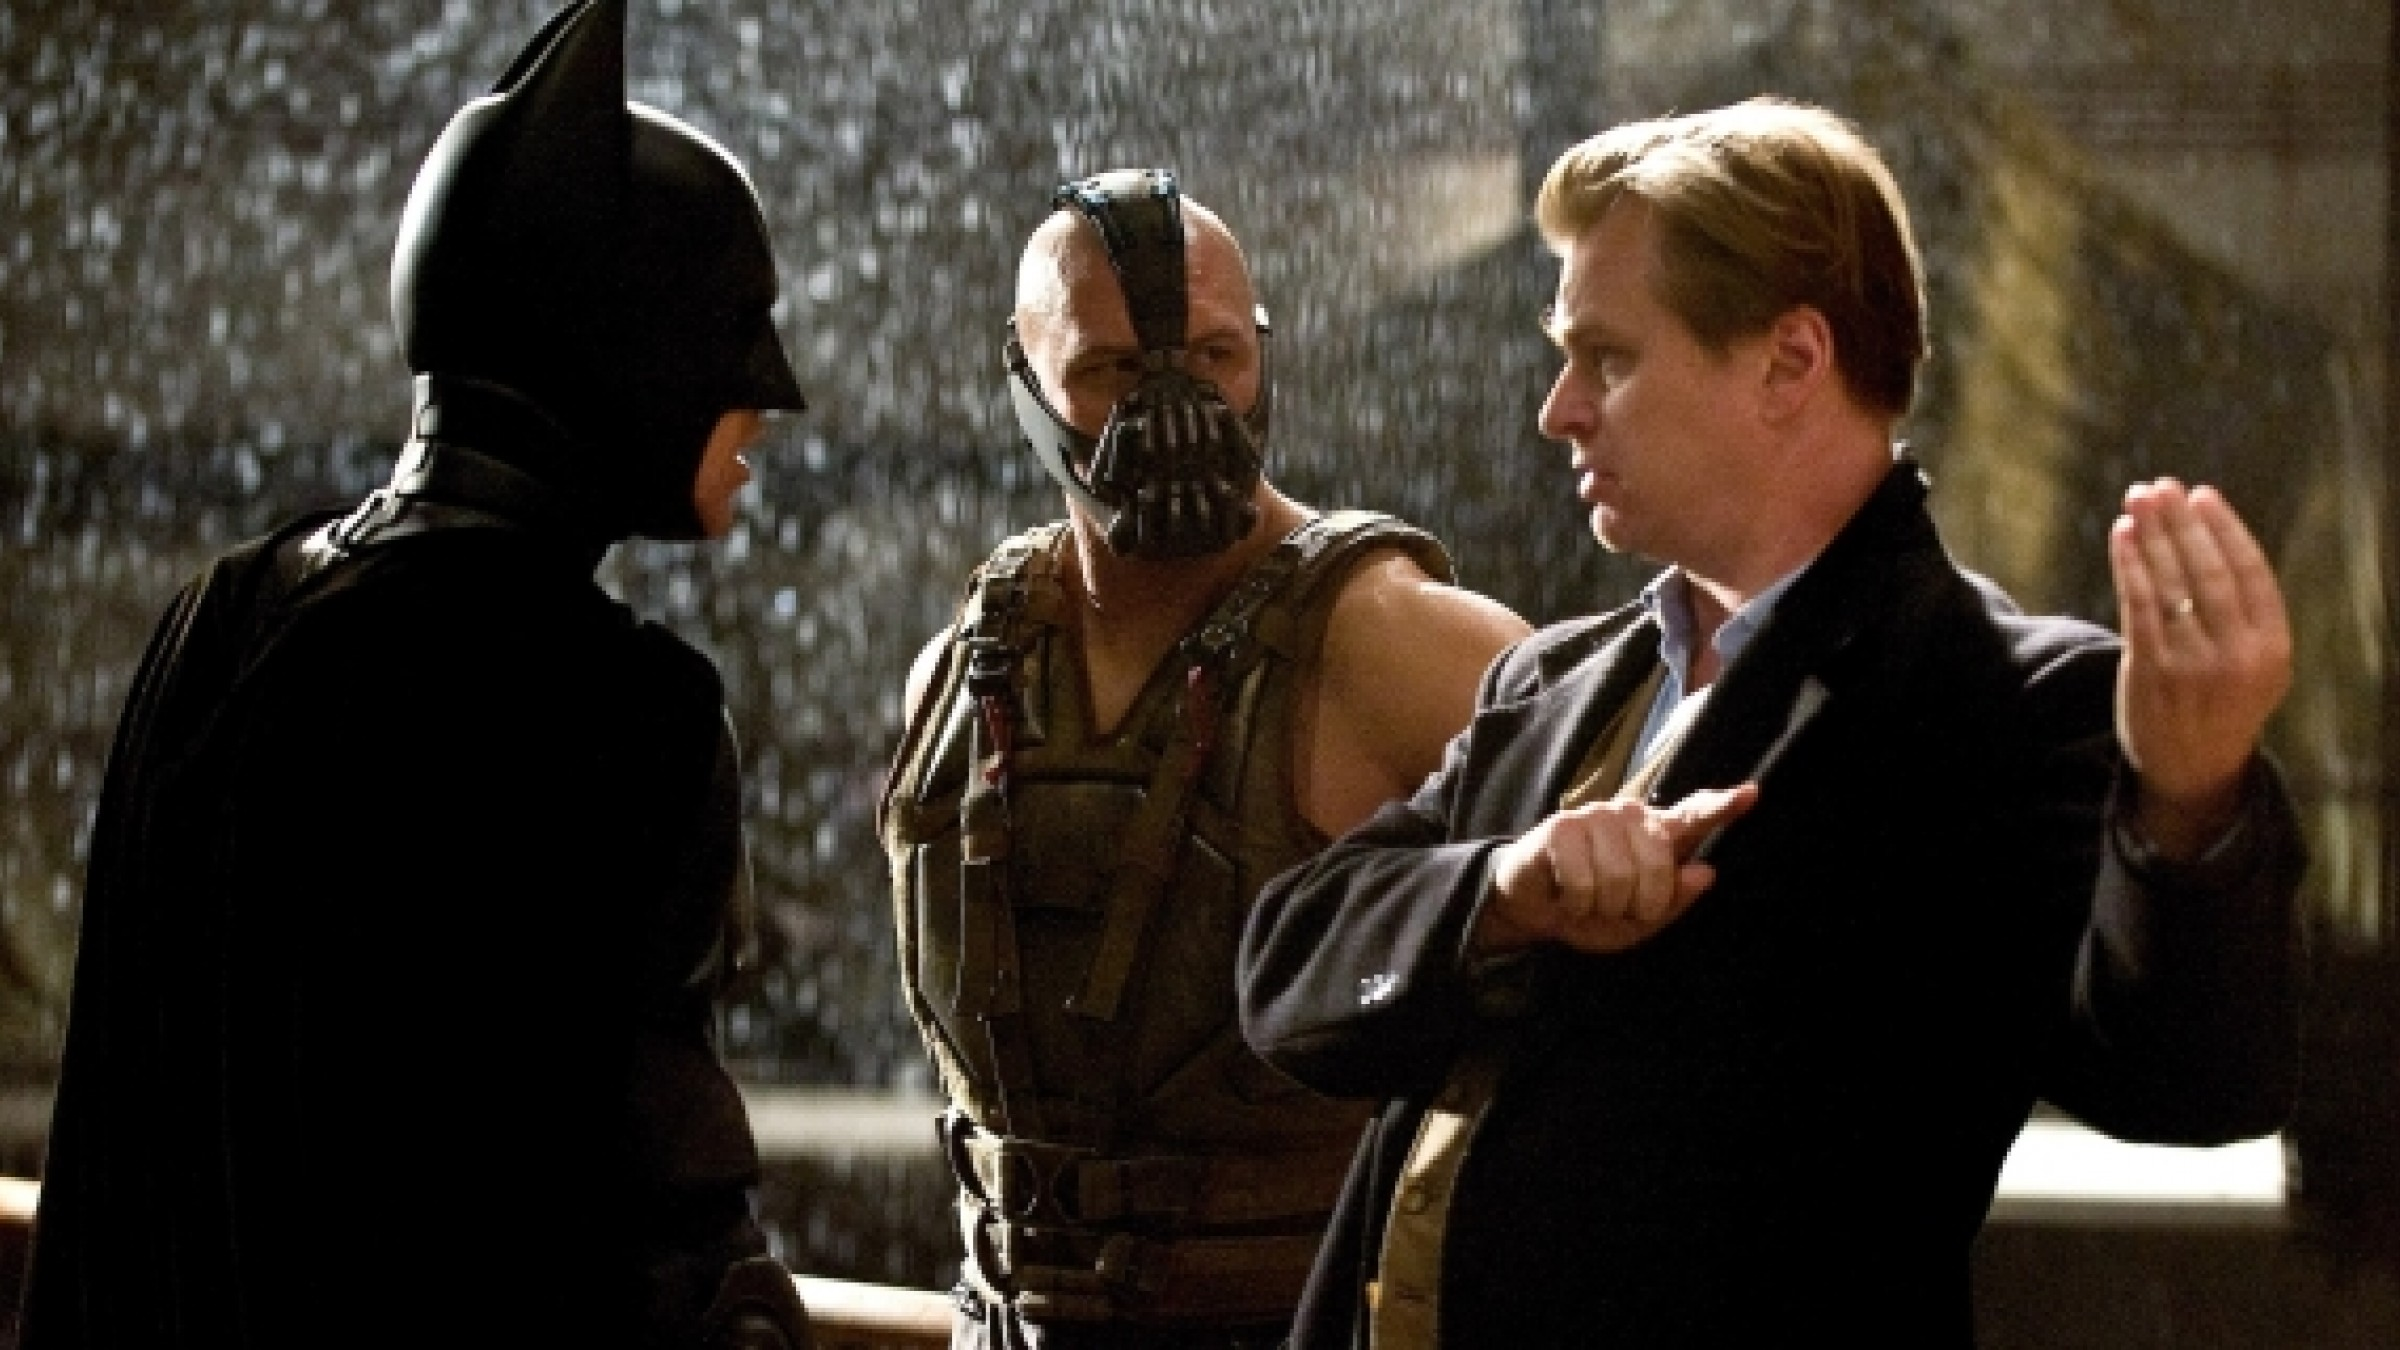 Watch: Breaking Down the Pencil Trick Scene from Christopher Nolan's 'The Dark Knight'